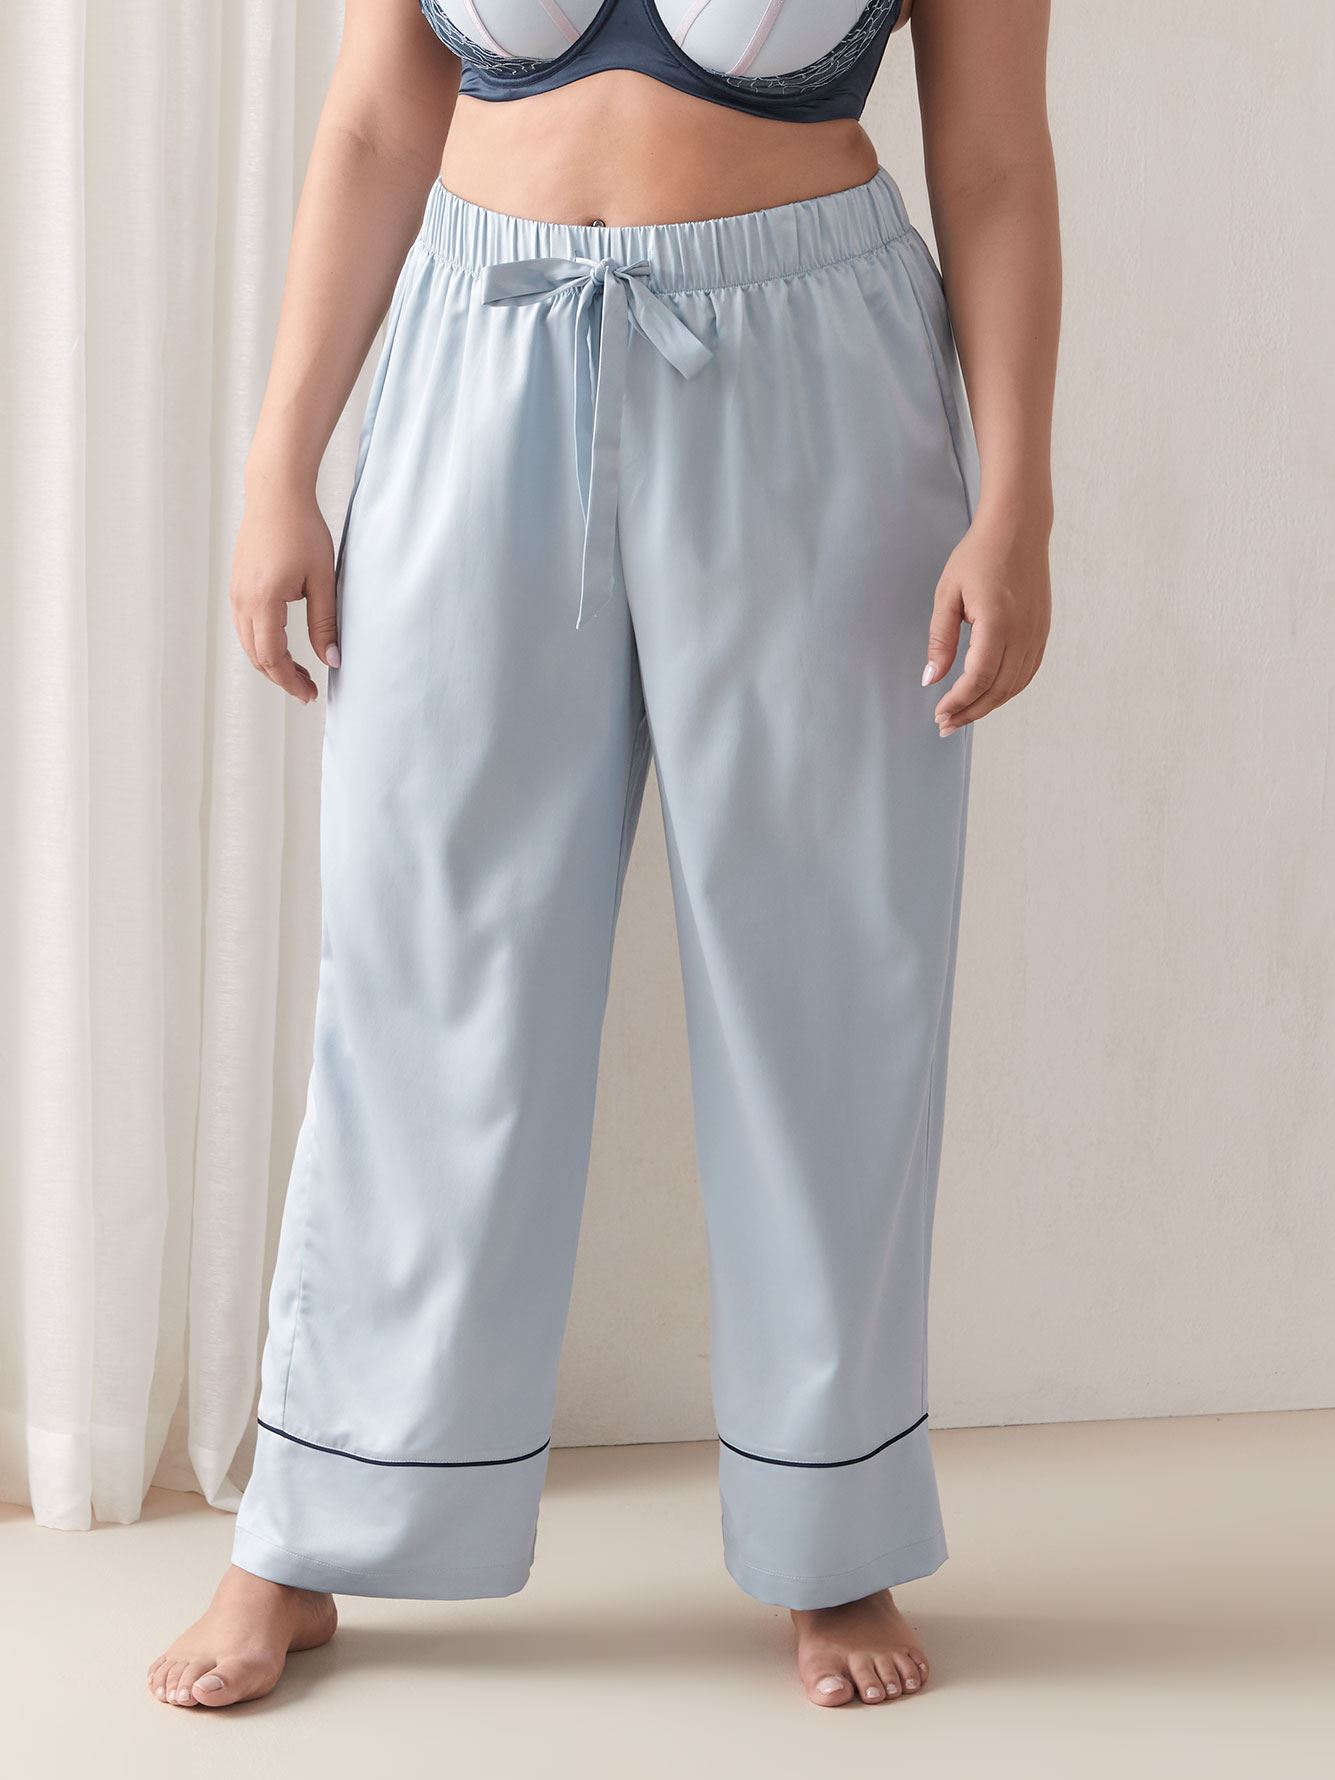 Tailored PJ Pants with Piping Detail - Ashley Graham